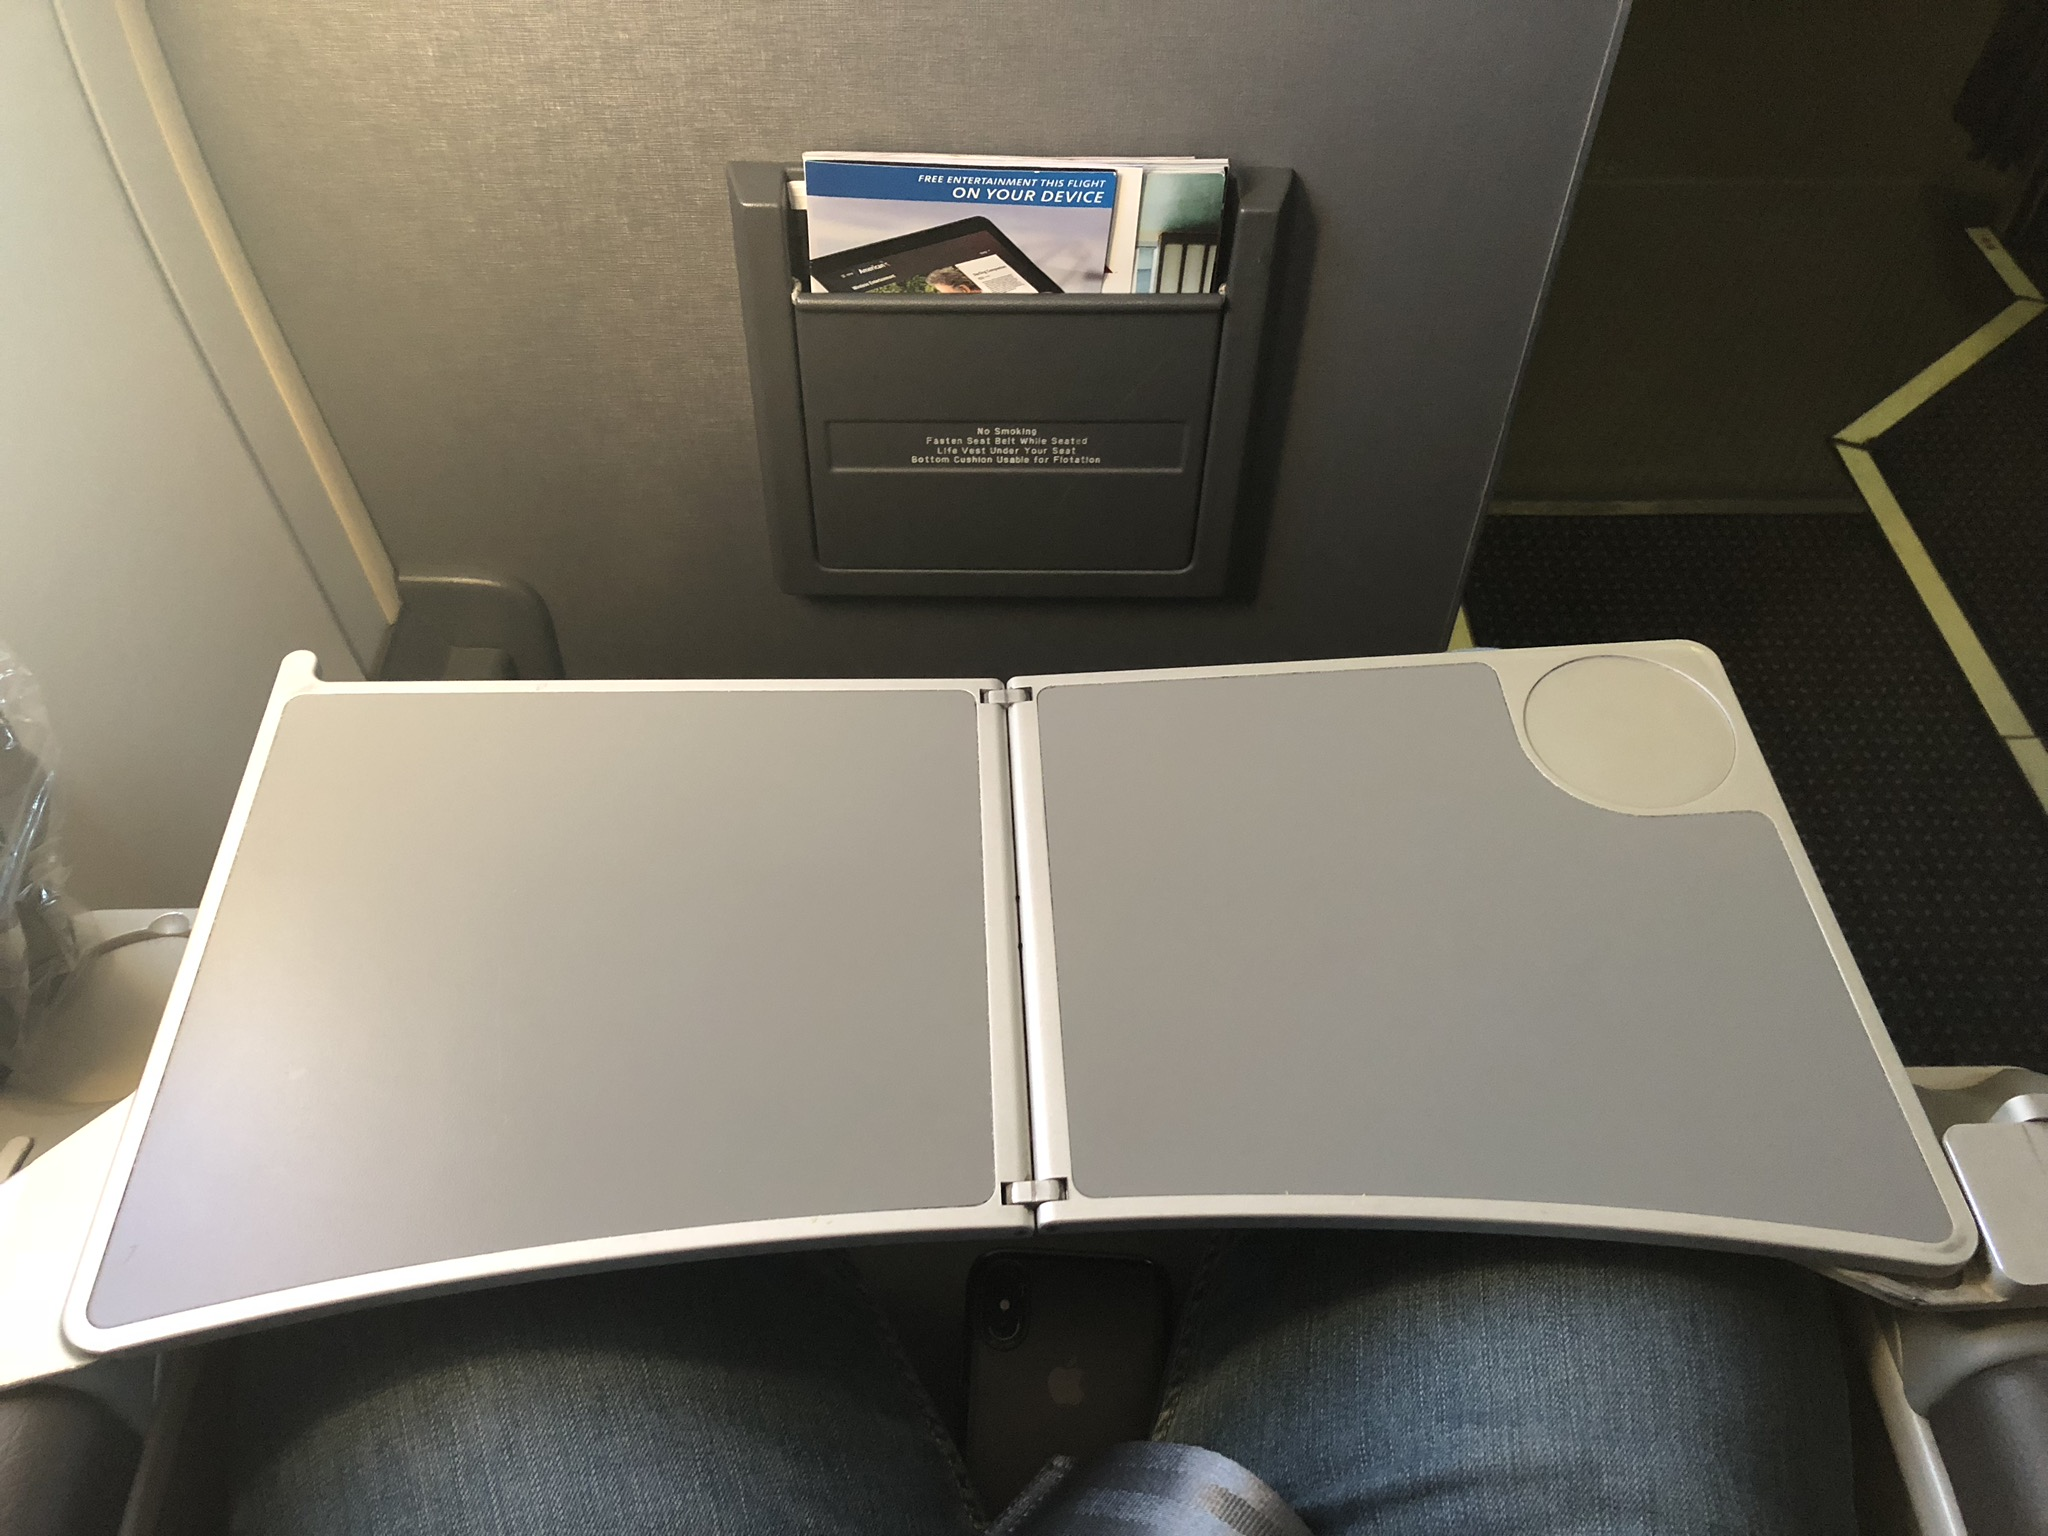 2020 american airlines domestic first hard tray table